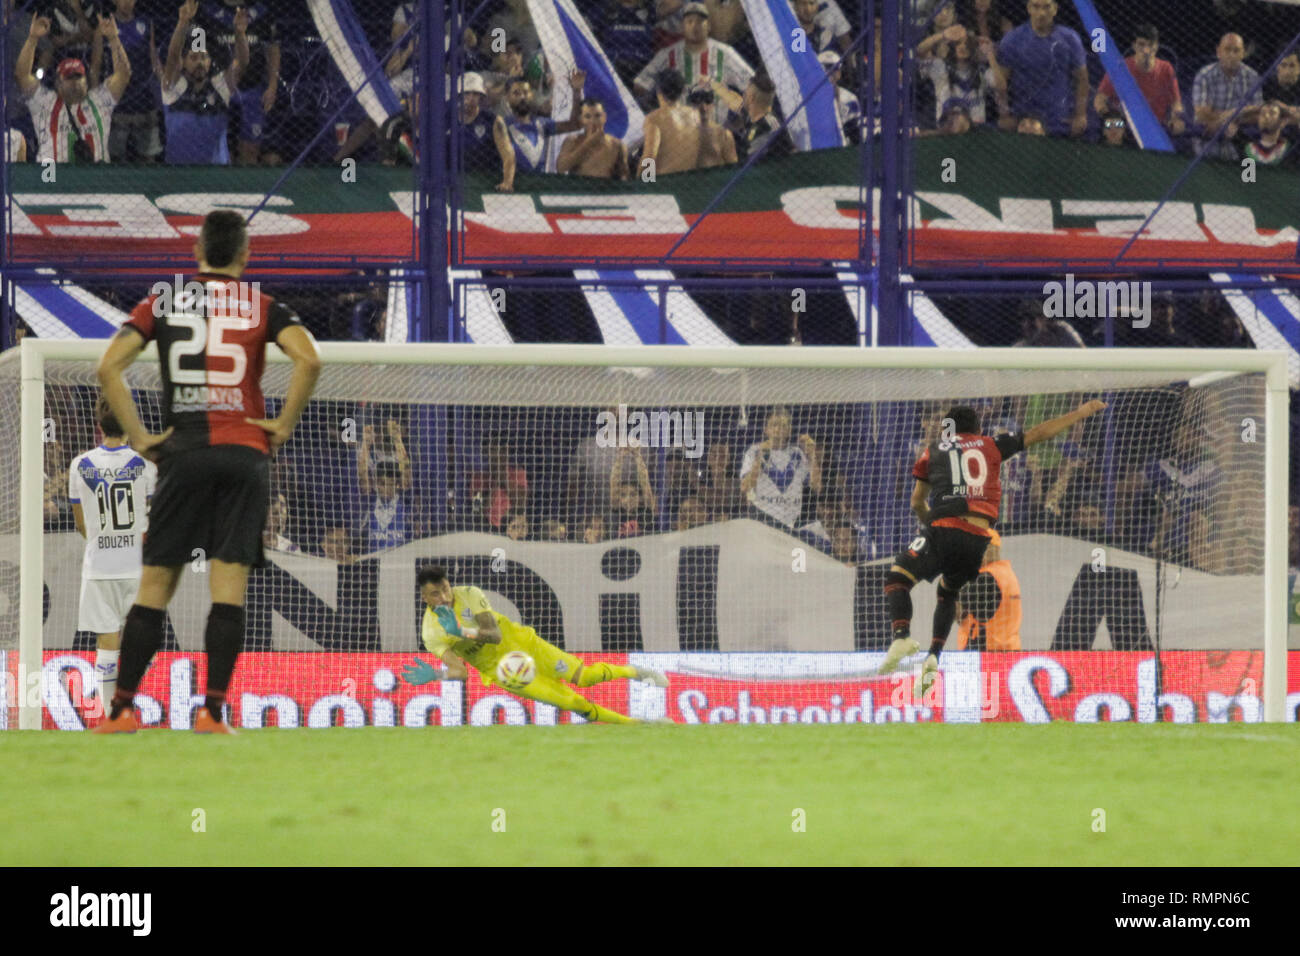 Buenos Aires, Argentina. 15th Feb, 2019. Luis Rodriguez shoots penalty kick during the match between Vélez Sarsfield e Colon for Superliga Argentina, this friday on José Amalfitani Stadium on Buenos Aires, Argentina. ( Credit: Néstor J. Beremblum/Alamy Live News - Stock Image